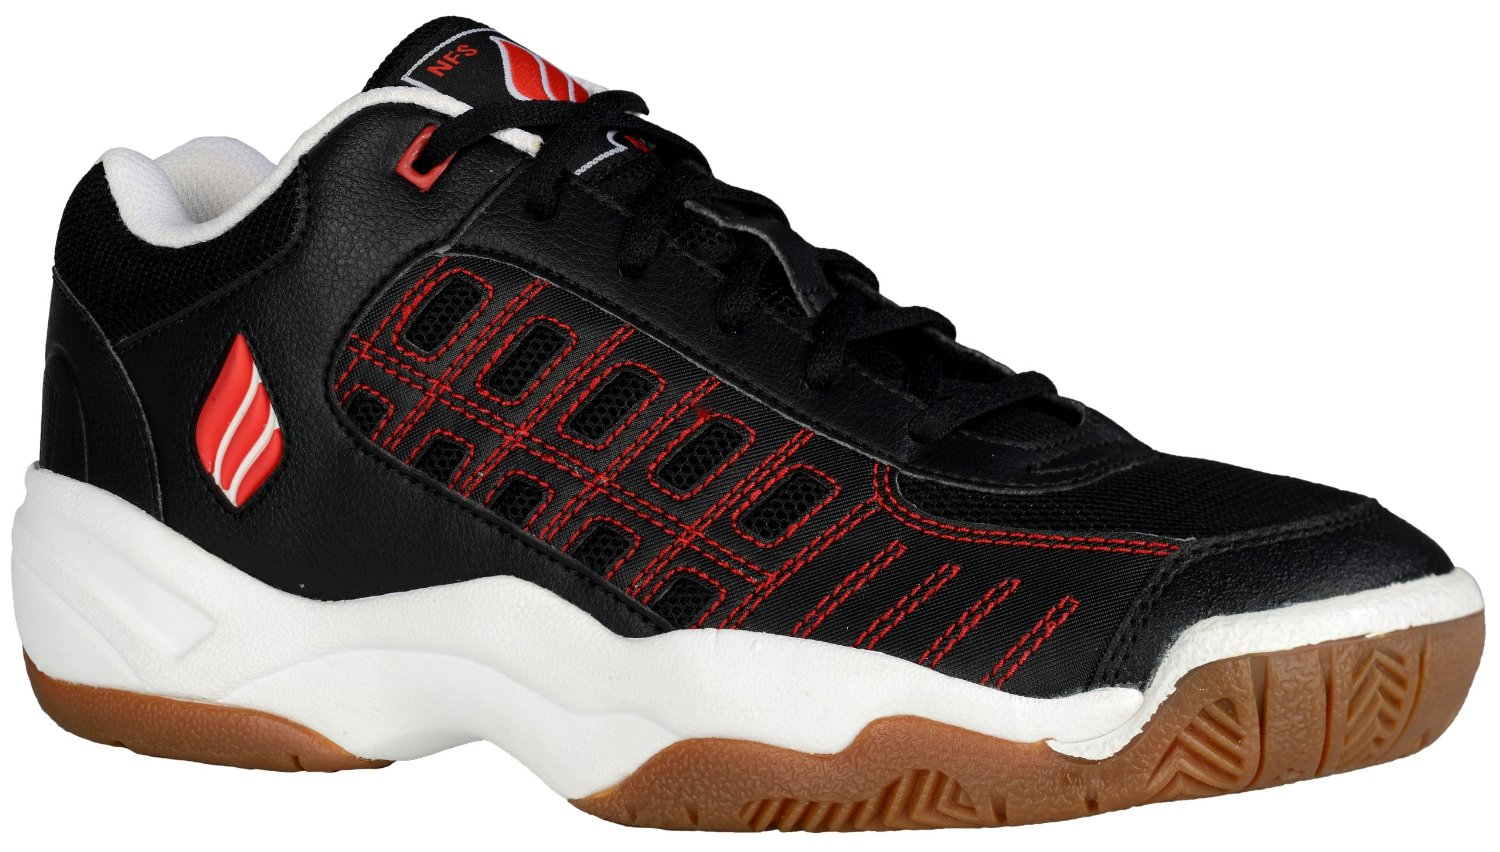 Ektelon NFS Classic II Indoor Men's Shoe (Black/White/Red) - ONLY SIZE 7 LEFT IN STOCK